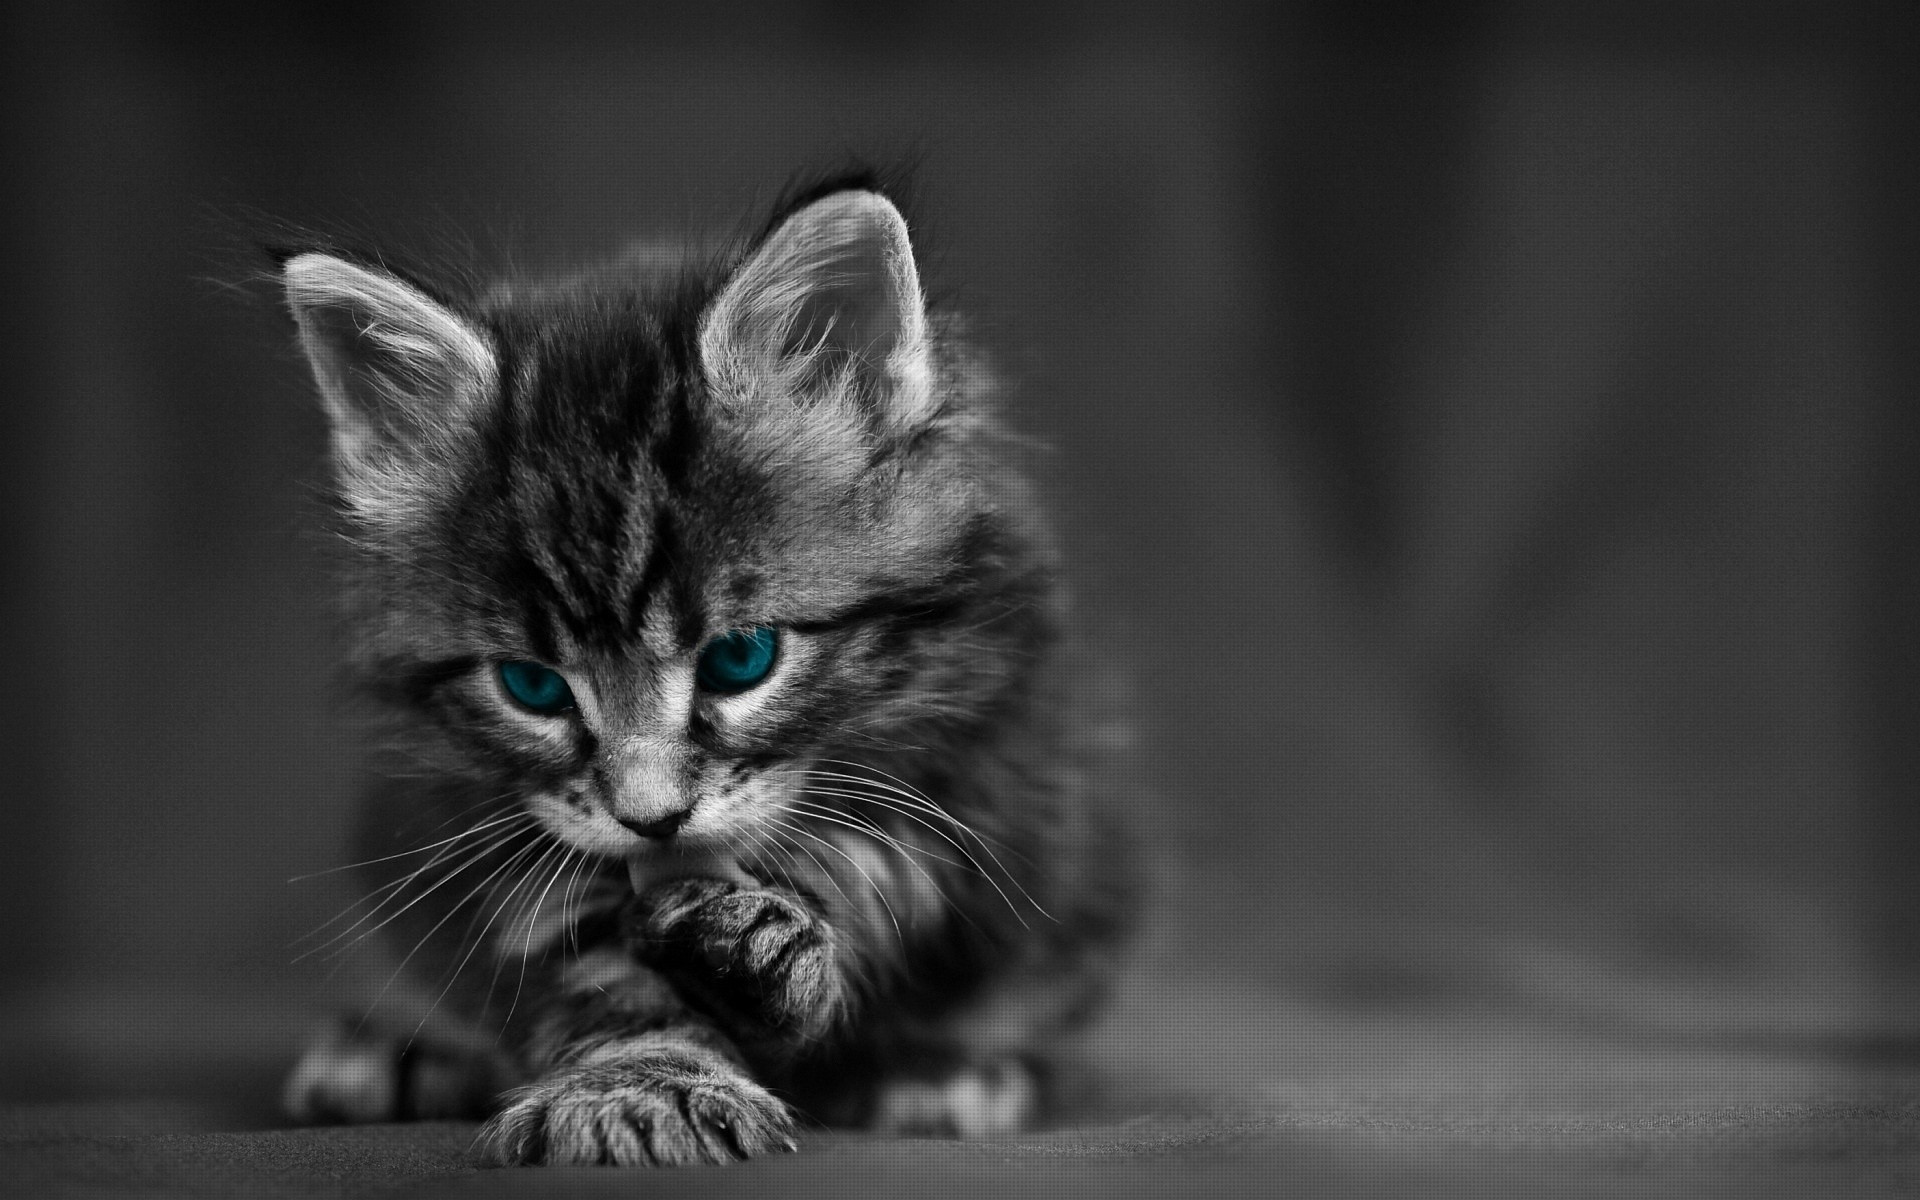 Res: 1920x1200, Maine Coon, kitten, gray cat, fluffy cat, blue eyes, cute animals